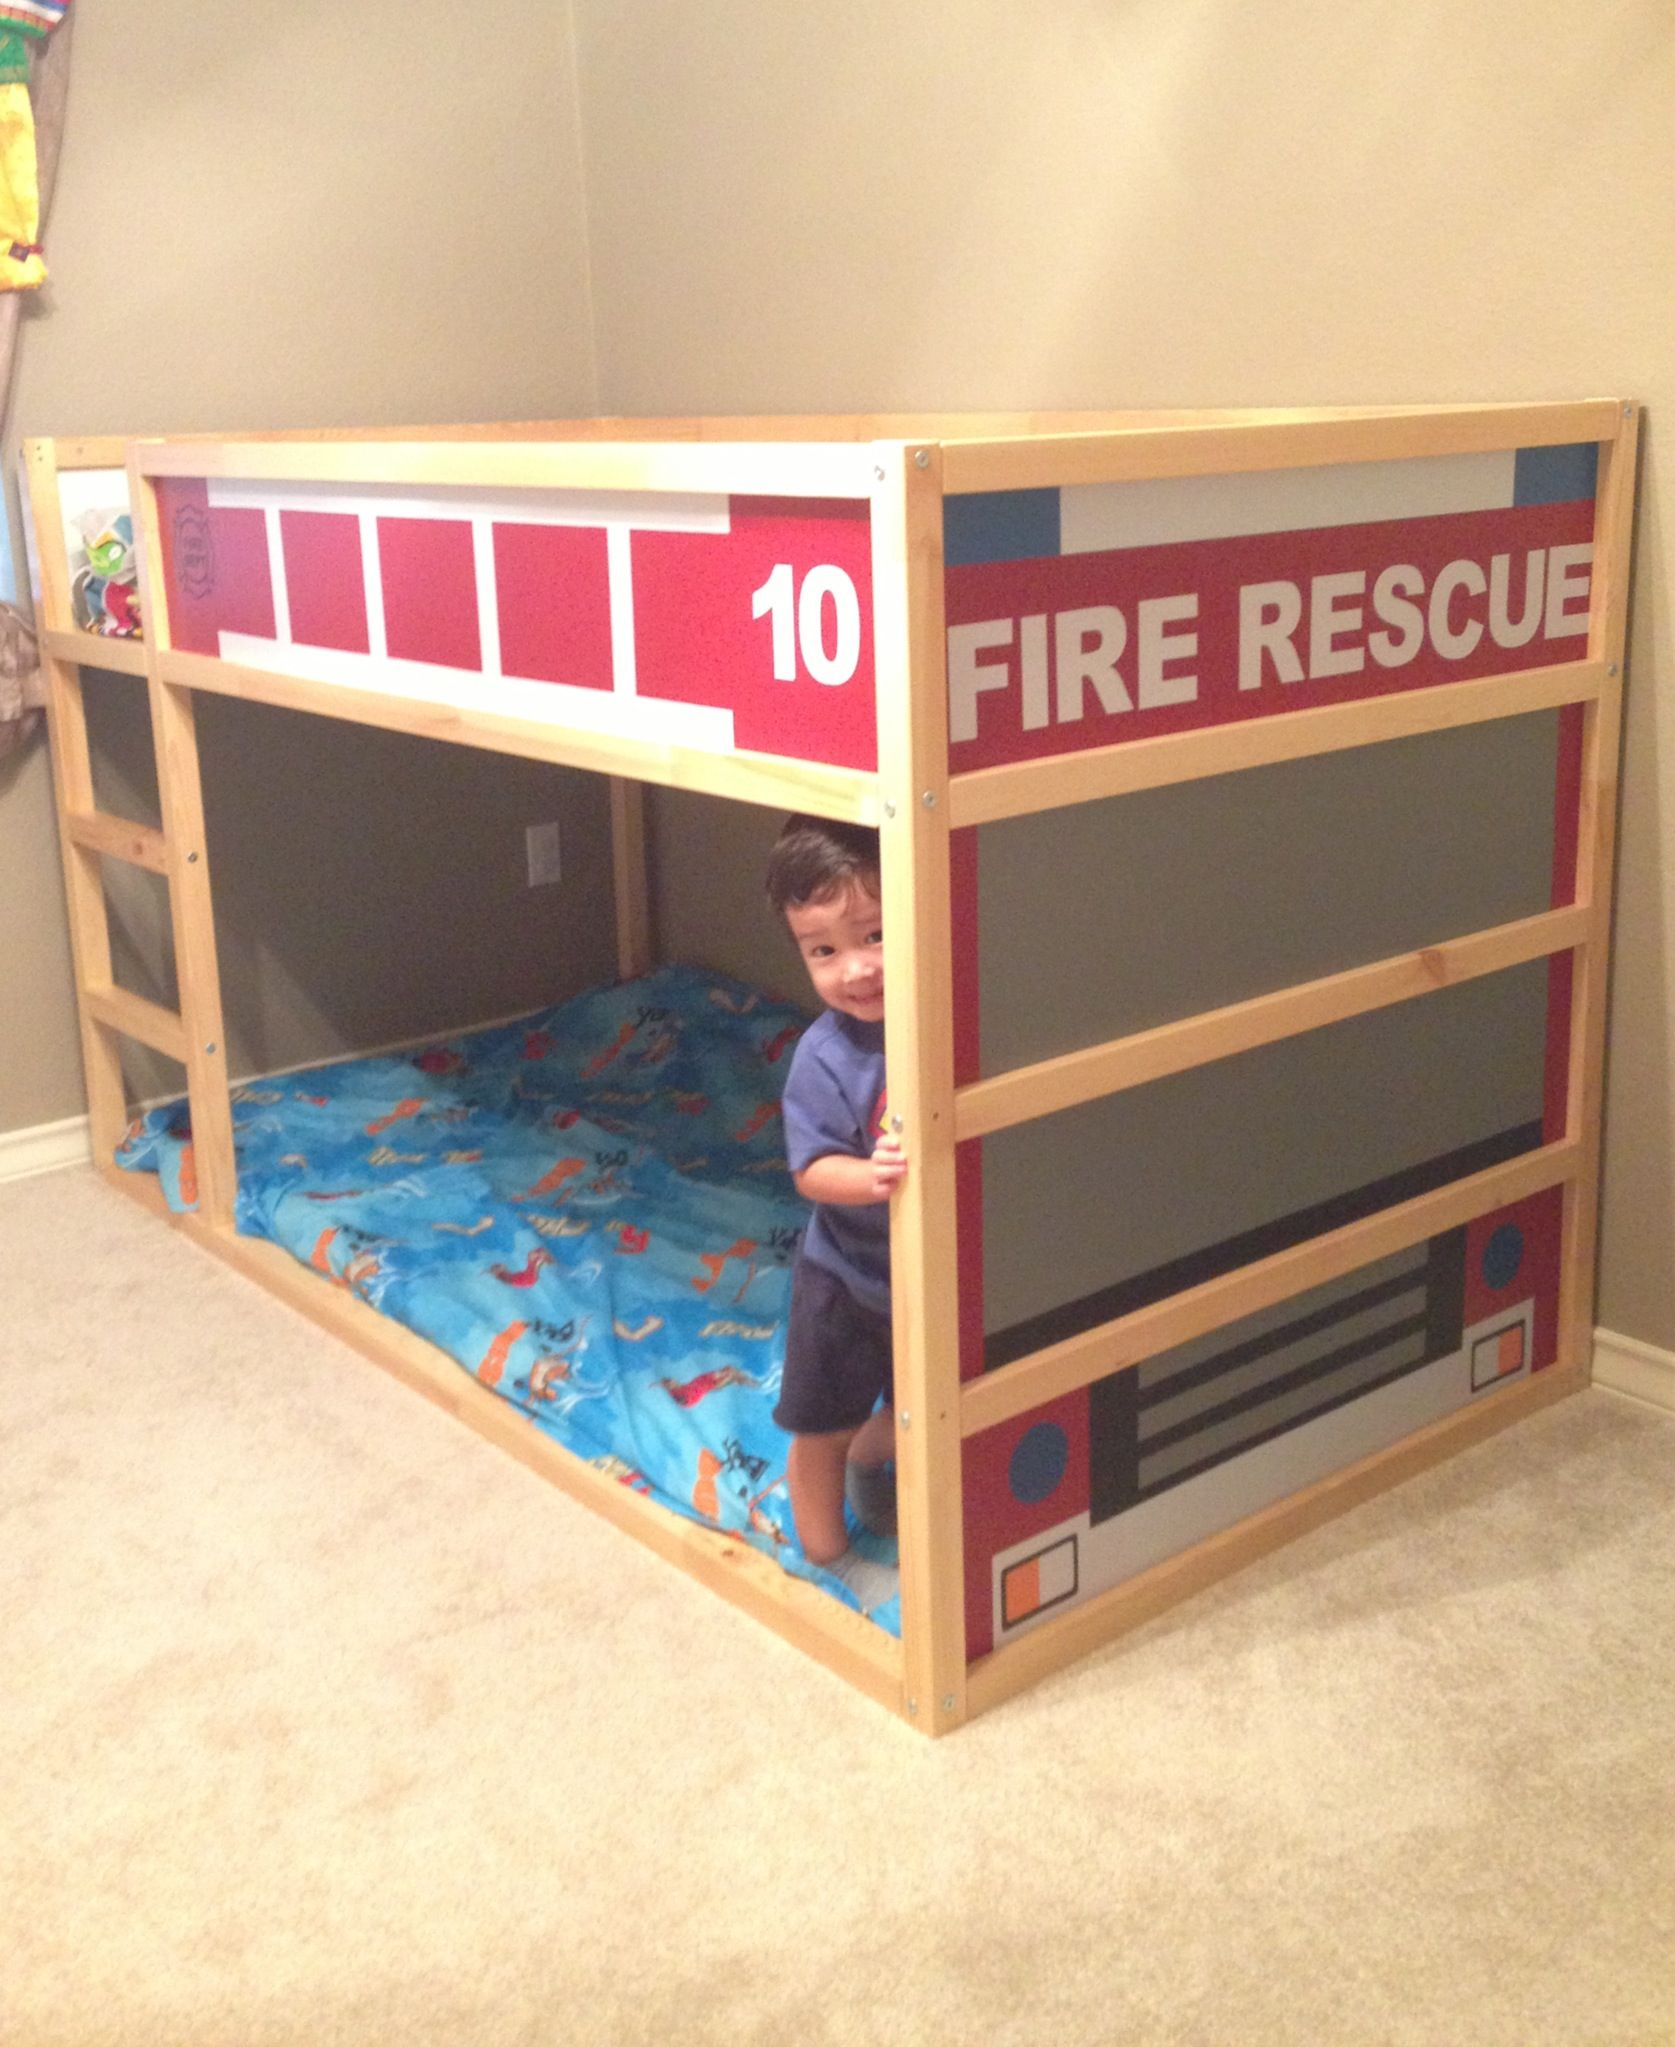 My Kids Ikea Kura Bed Turned Fire Truck With Vinyl And My